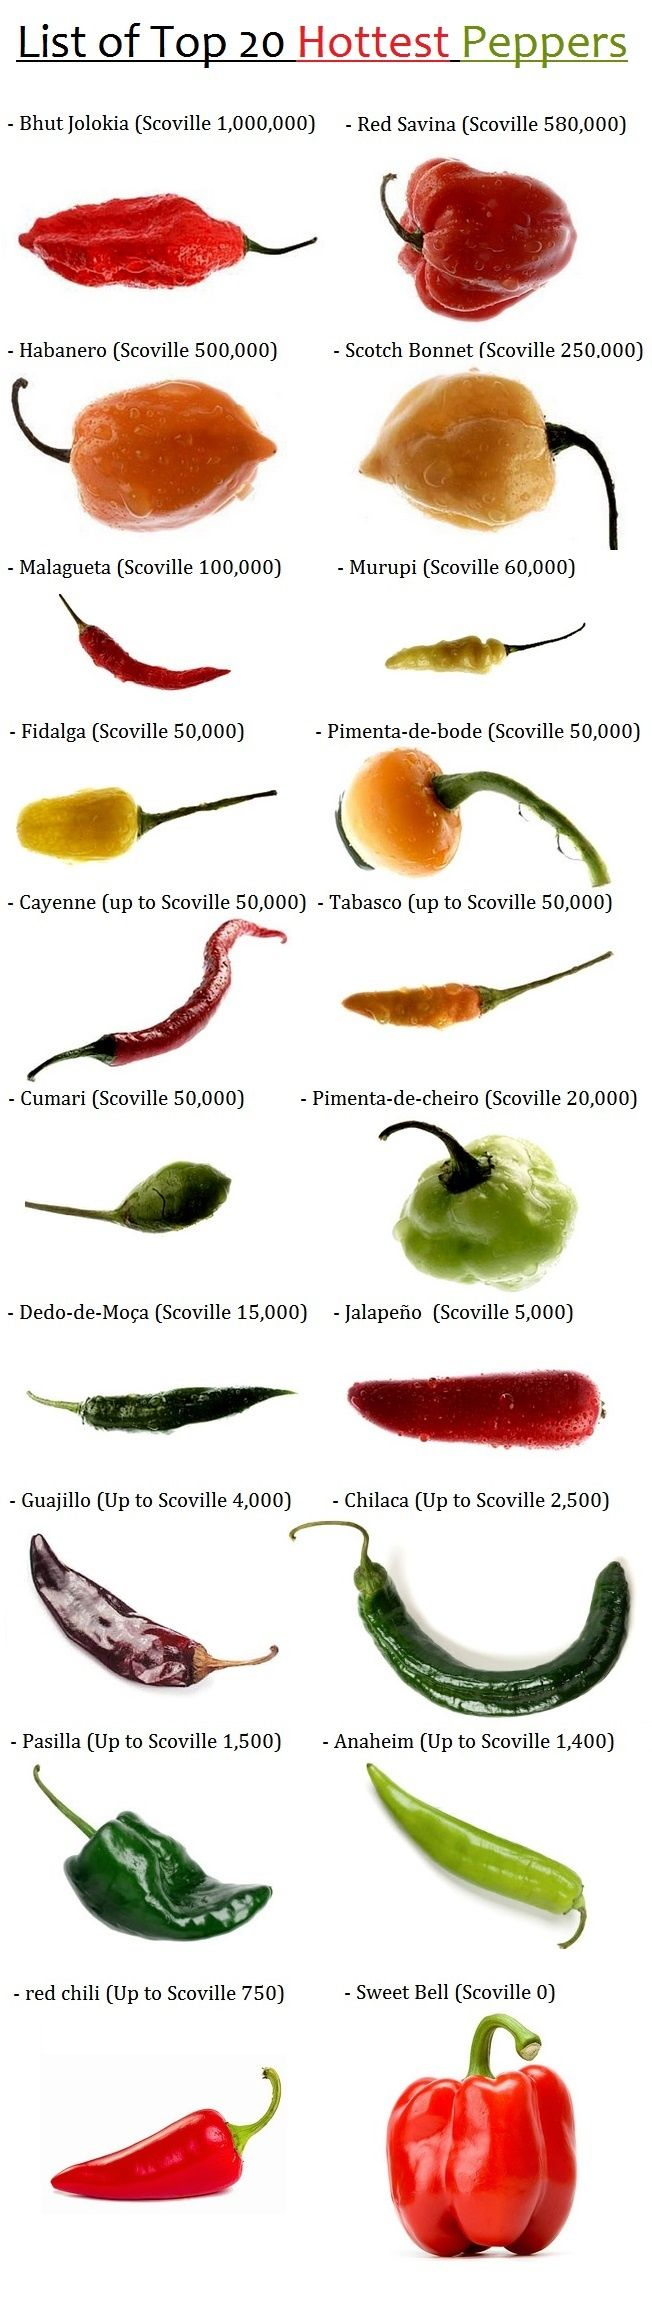 List Of Top 20 Hottest Peppers Moruga Not Included Here Are The Growing